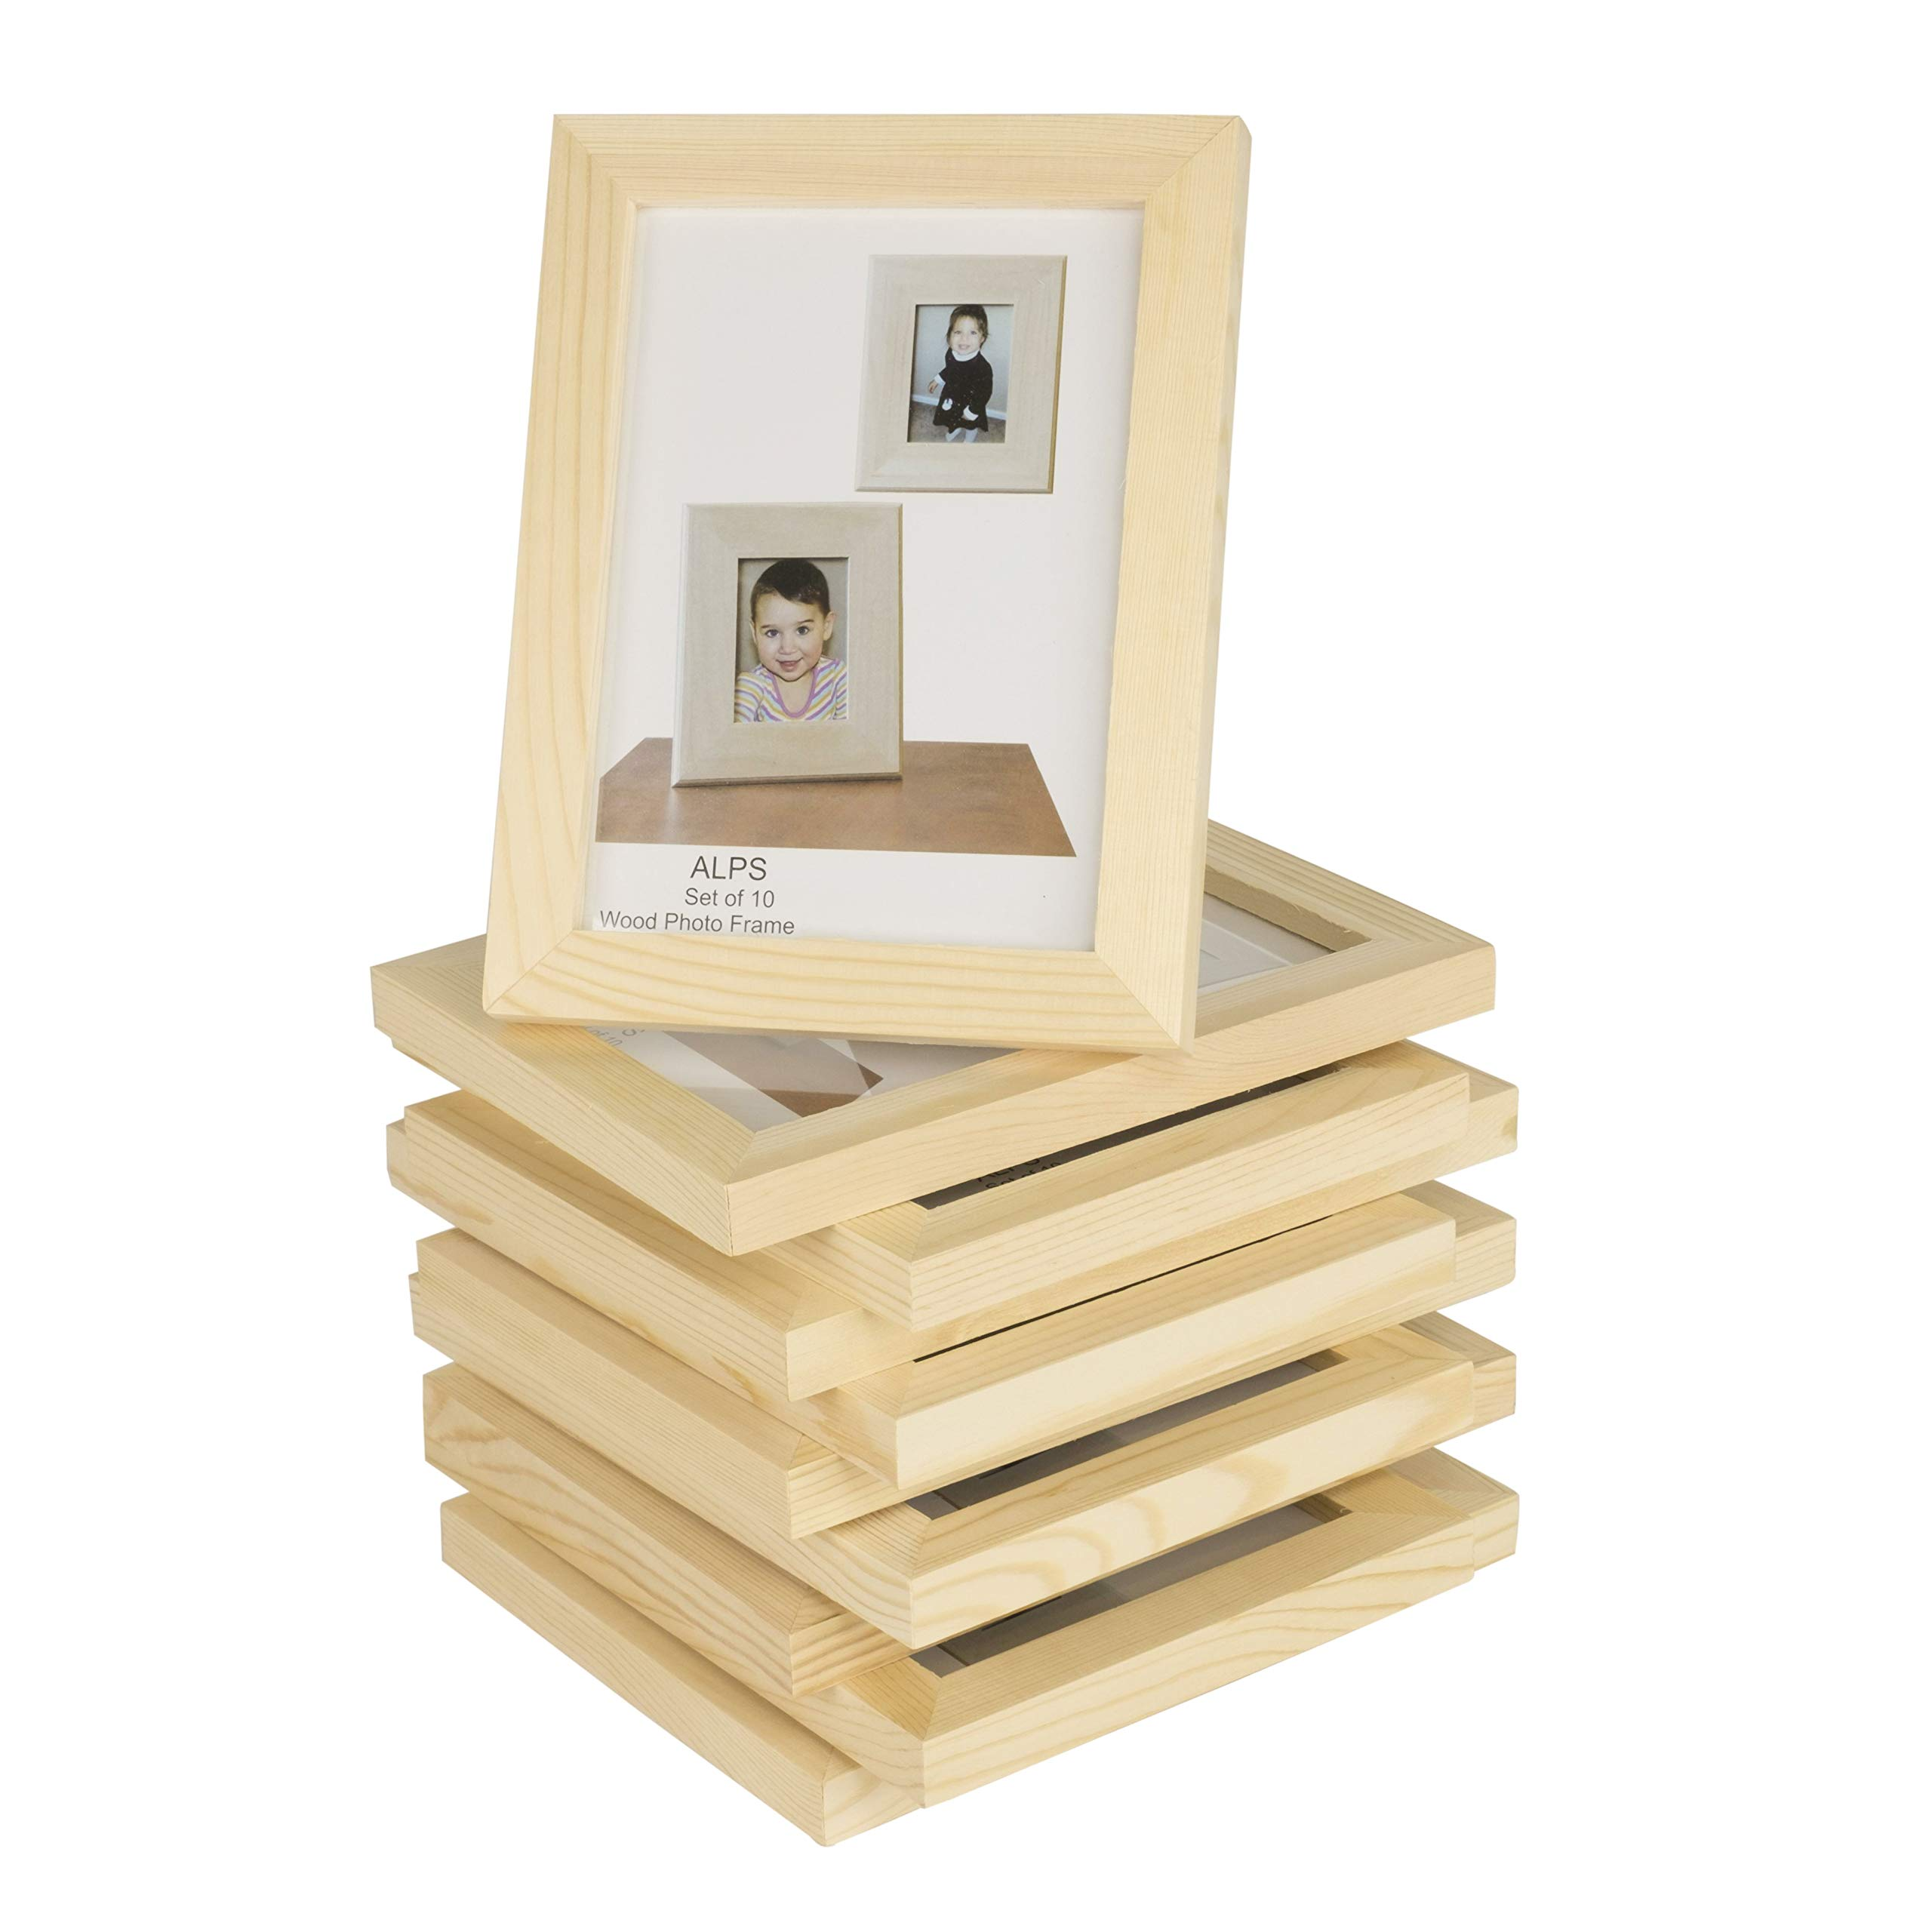 Wallniture Alps DIY Projects Unfinished Solid Crafting Wooden Picture Frames for 4x6 Inch Photos Set of 10 by Wallniture